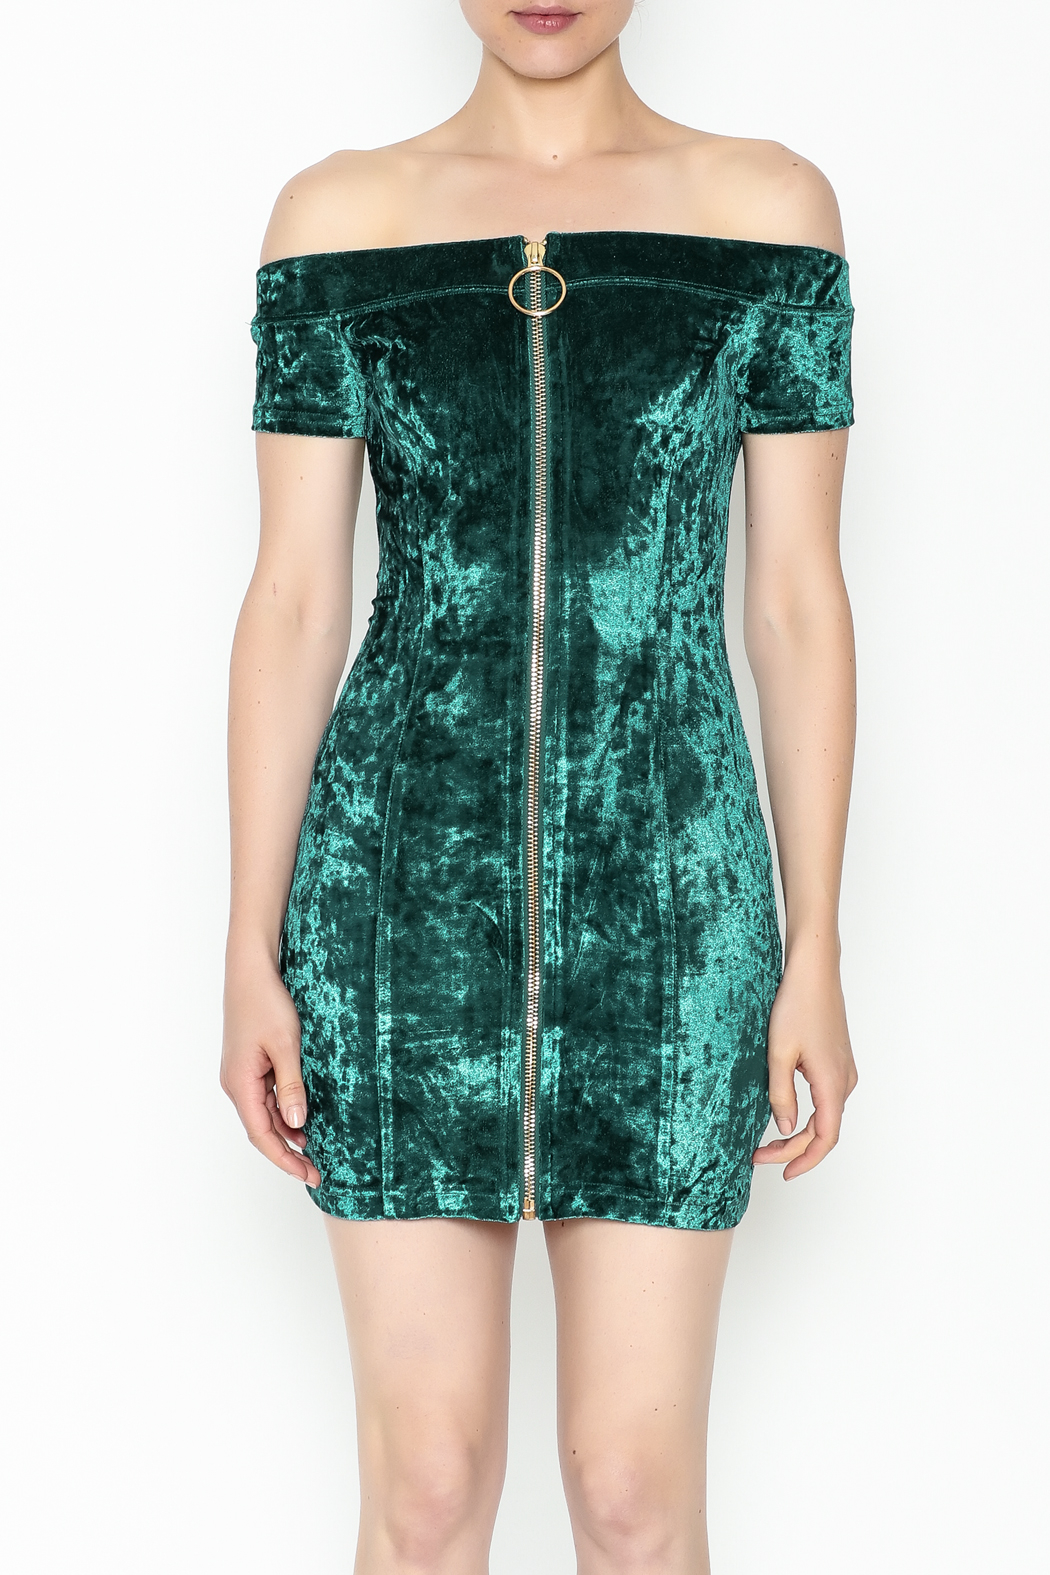 essue Zip Up Front Dress - Front Full Image